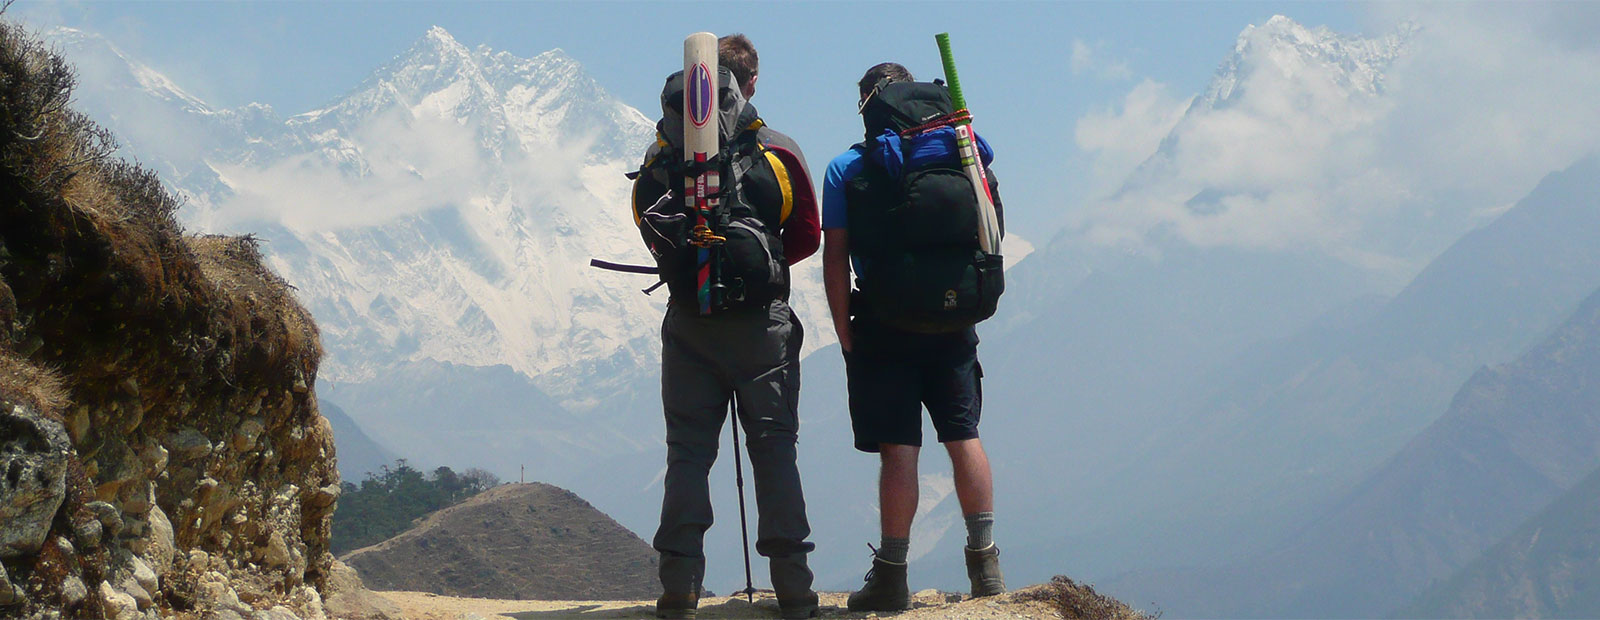 Cricket bat in front of Everest